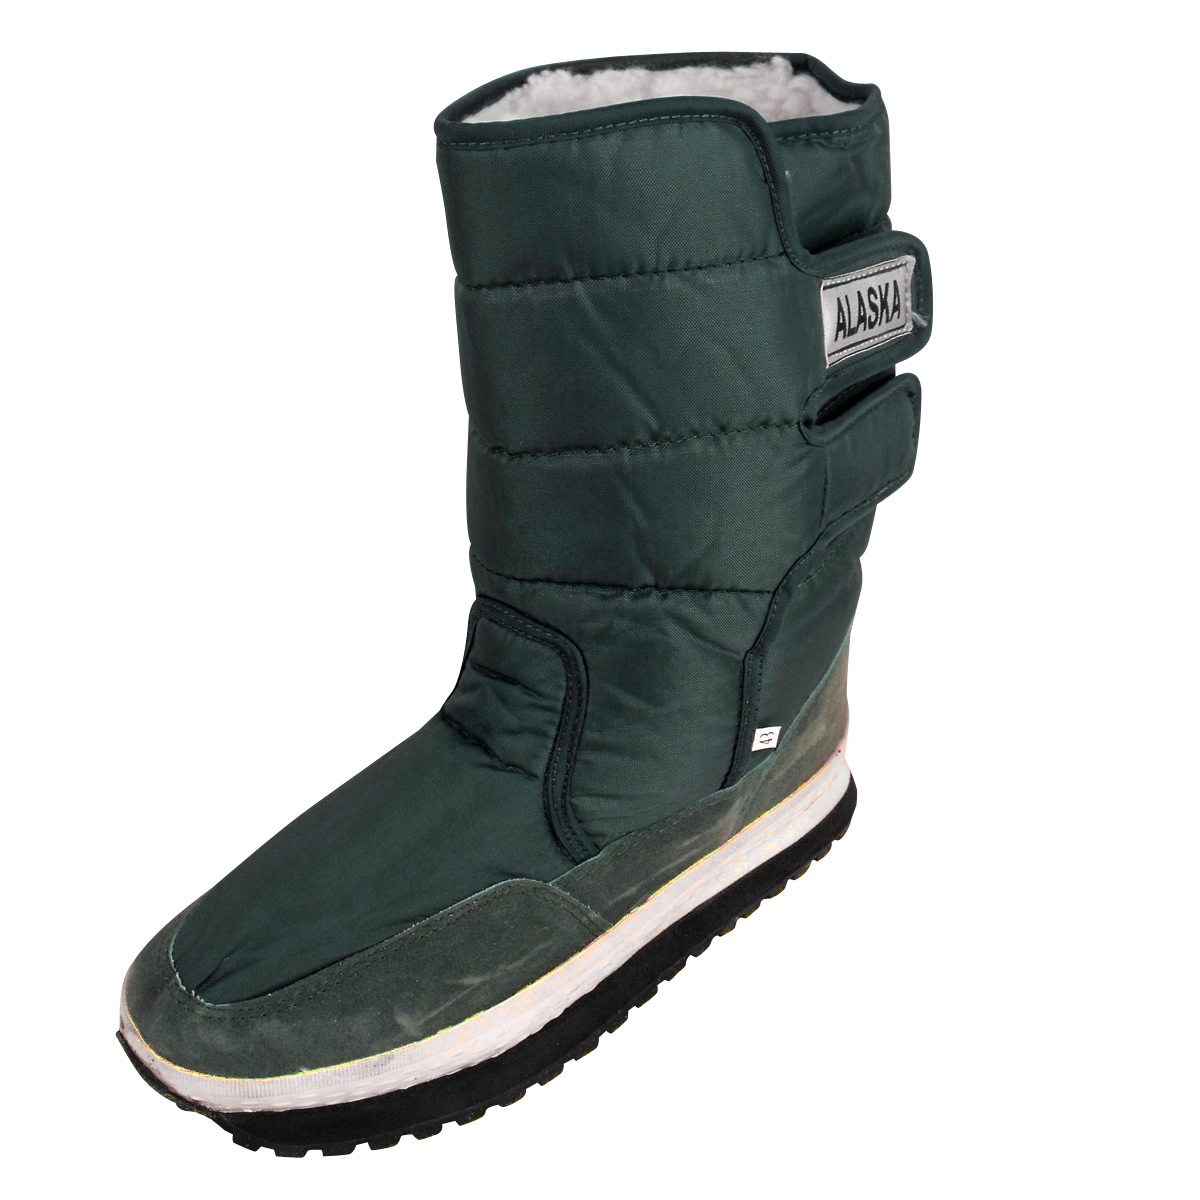 new mens shearling snow quilted thermal warm winter boot